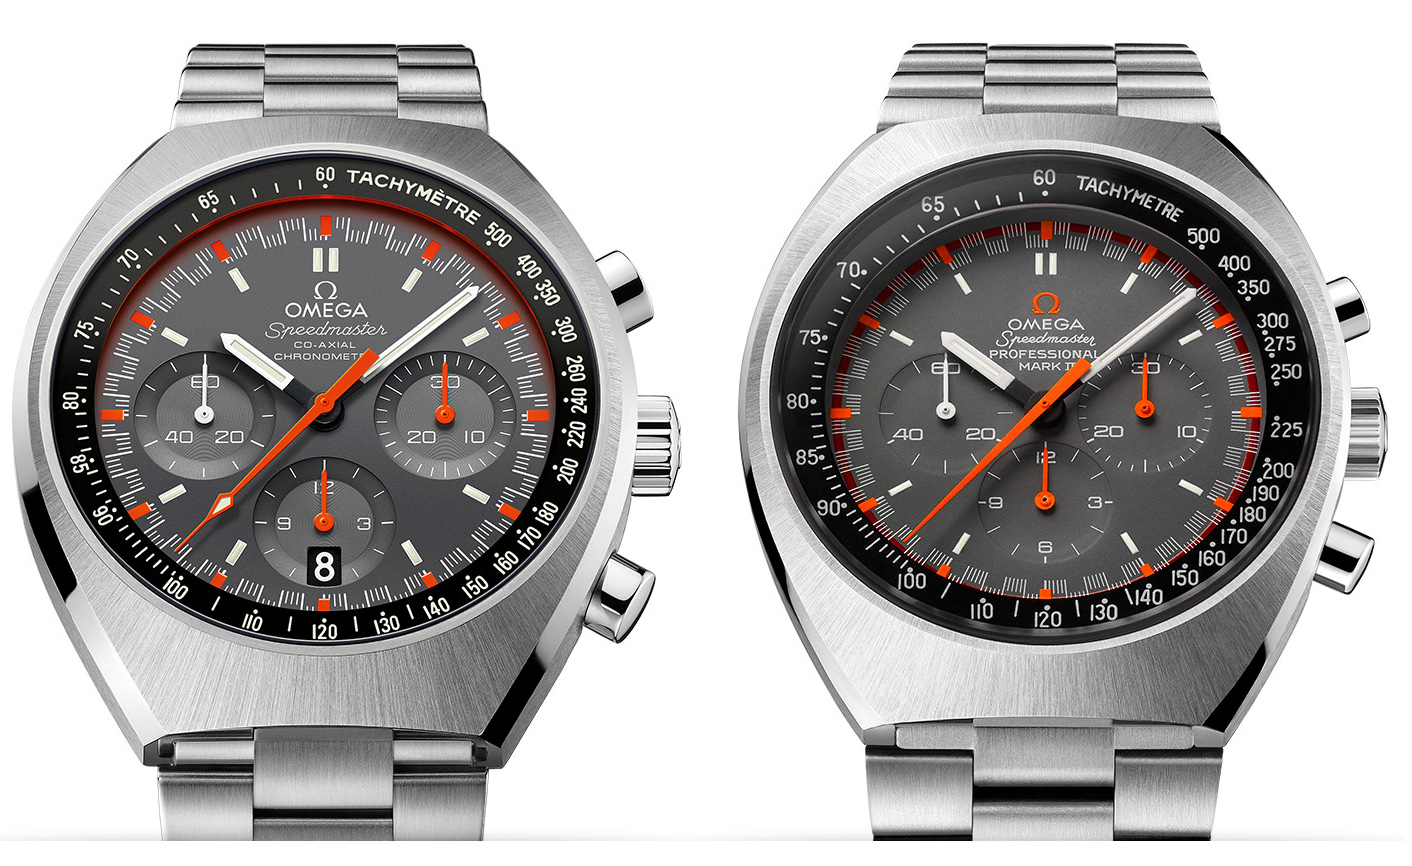 Omega Speedmaster Mark II - Dial Evolution (2014 Edition on the Left)